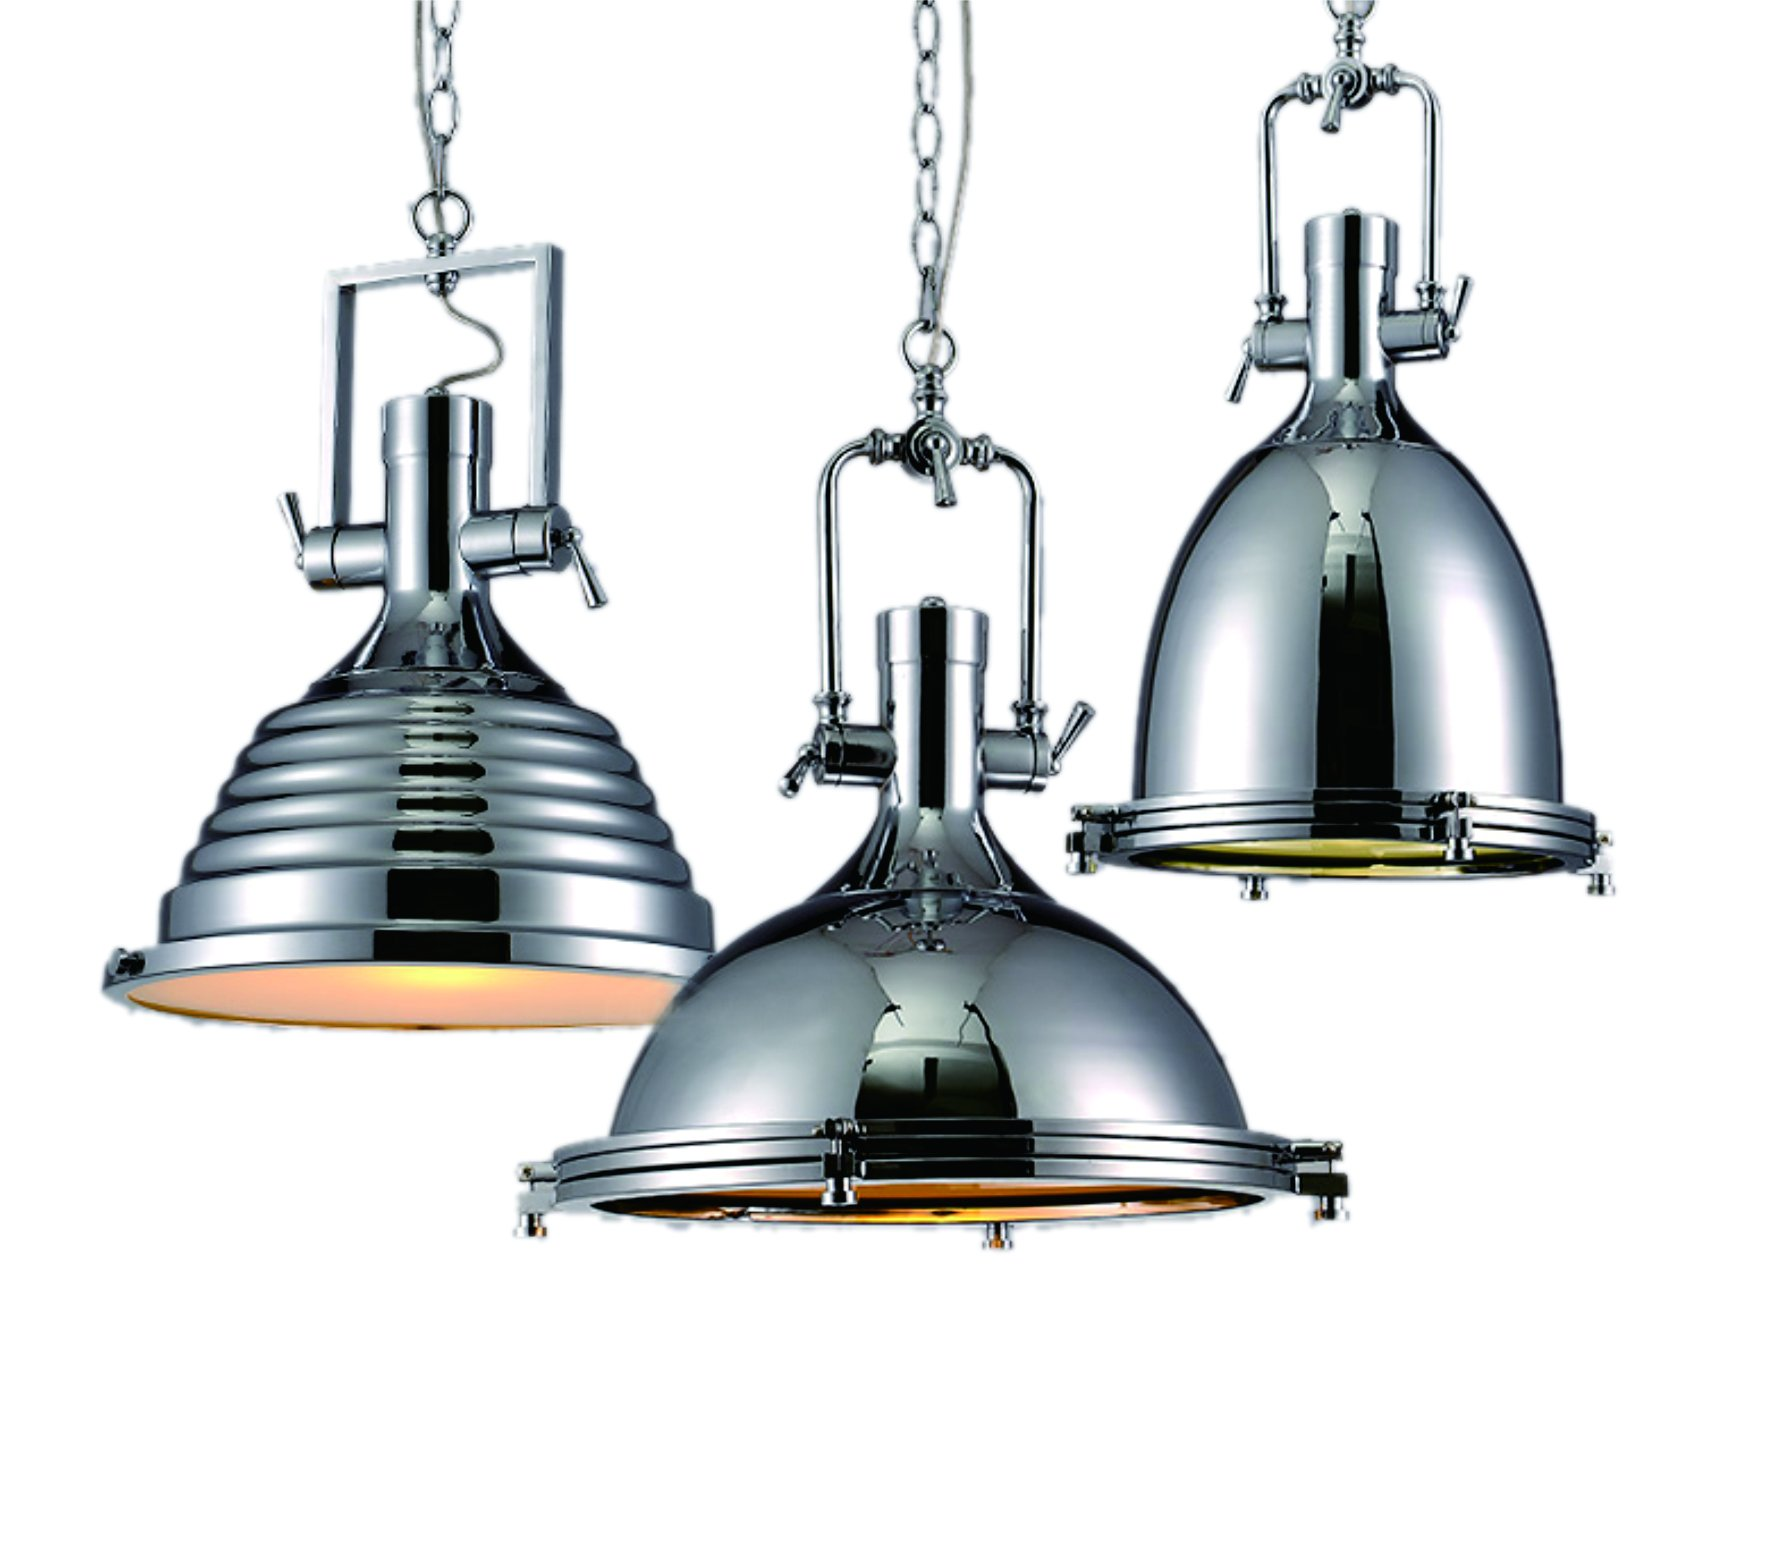 BrightLyf Classic Industrial Vintage Pendant Light Fixture, Chrome, Diameter 18 inches x Height 20 inches Chrome